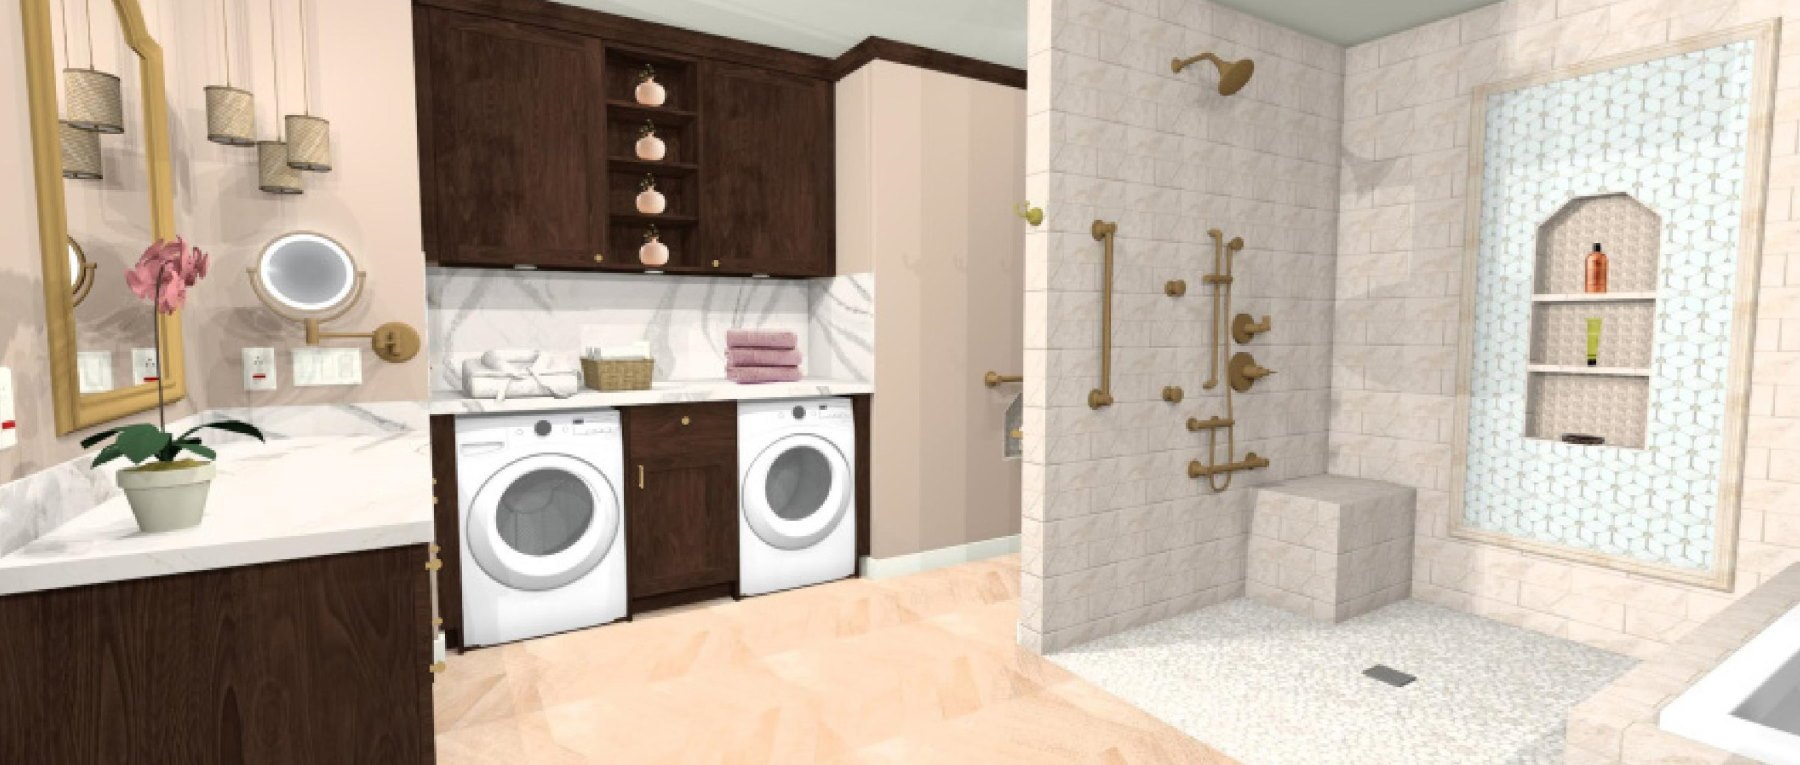 A spacious and functional primary bathroom that includes a double vanity, makeup vanity, a privacy toilet, shower, and bathtub